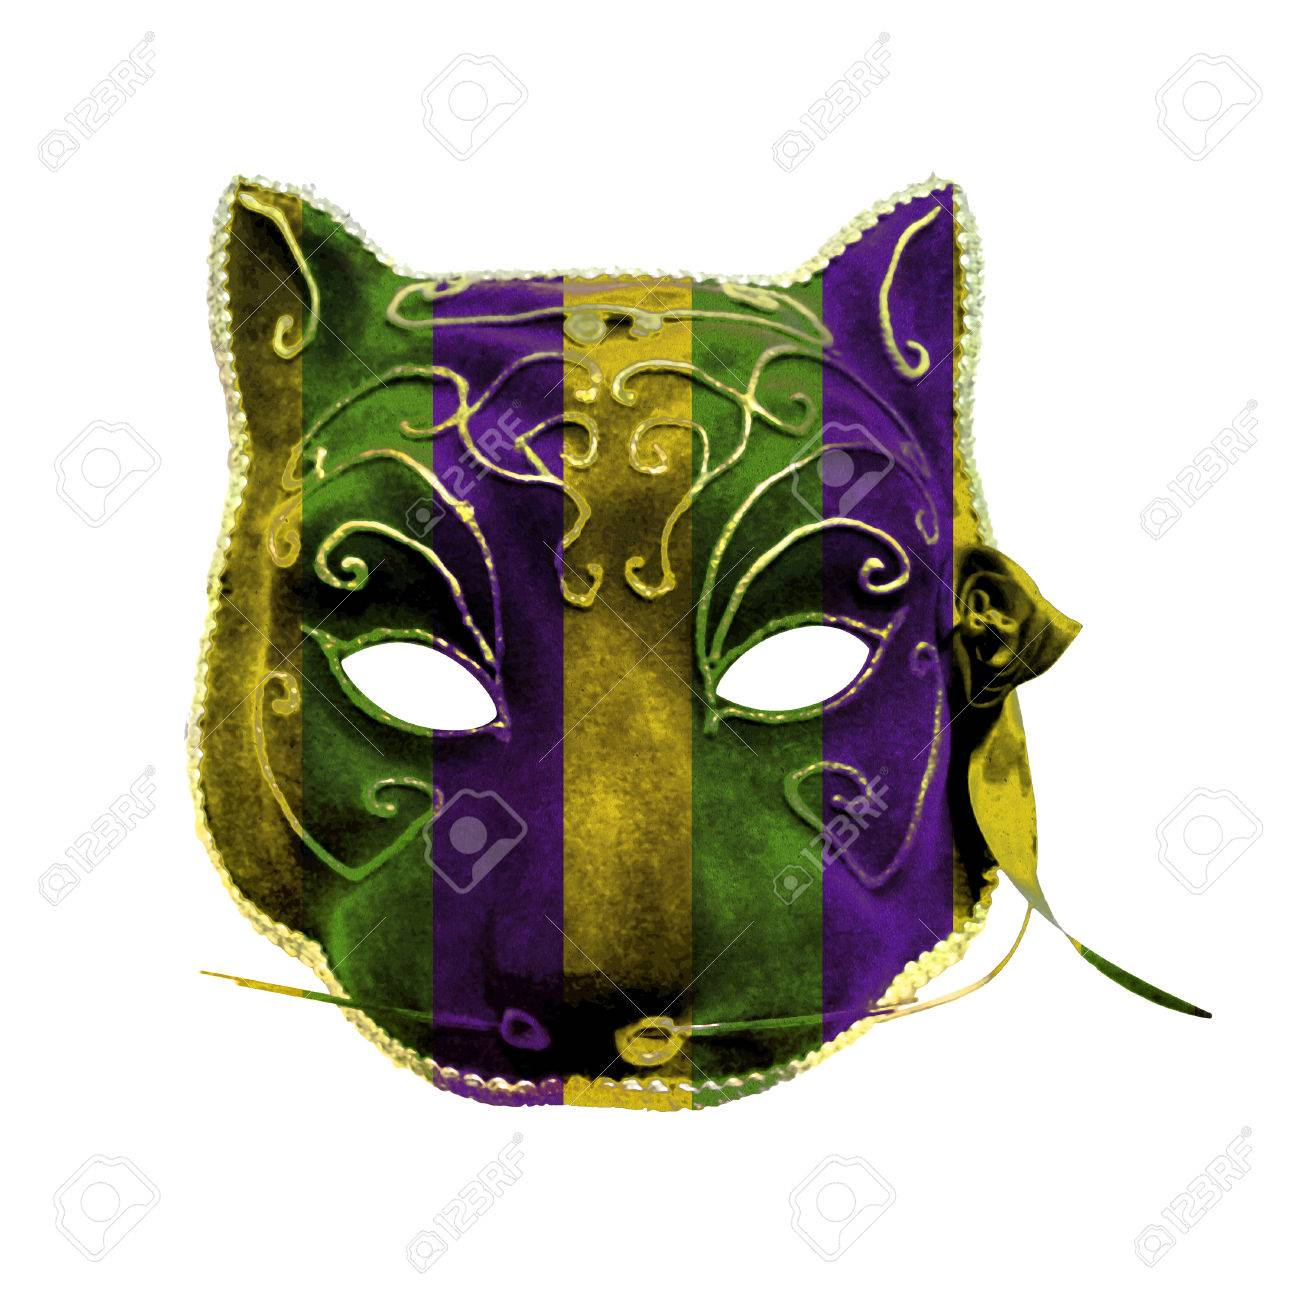 Hand Made Beatuy Venetian Style Catwoman Mask Colored With Mardi Gras Motif Stock Photo